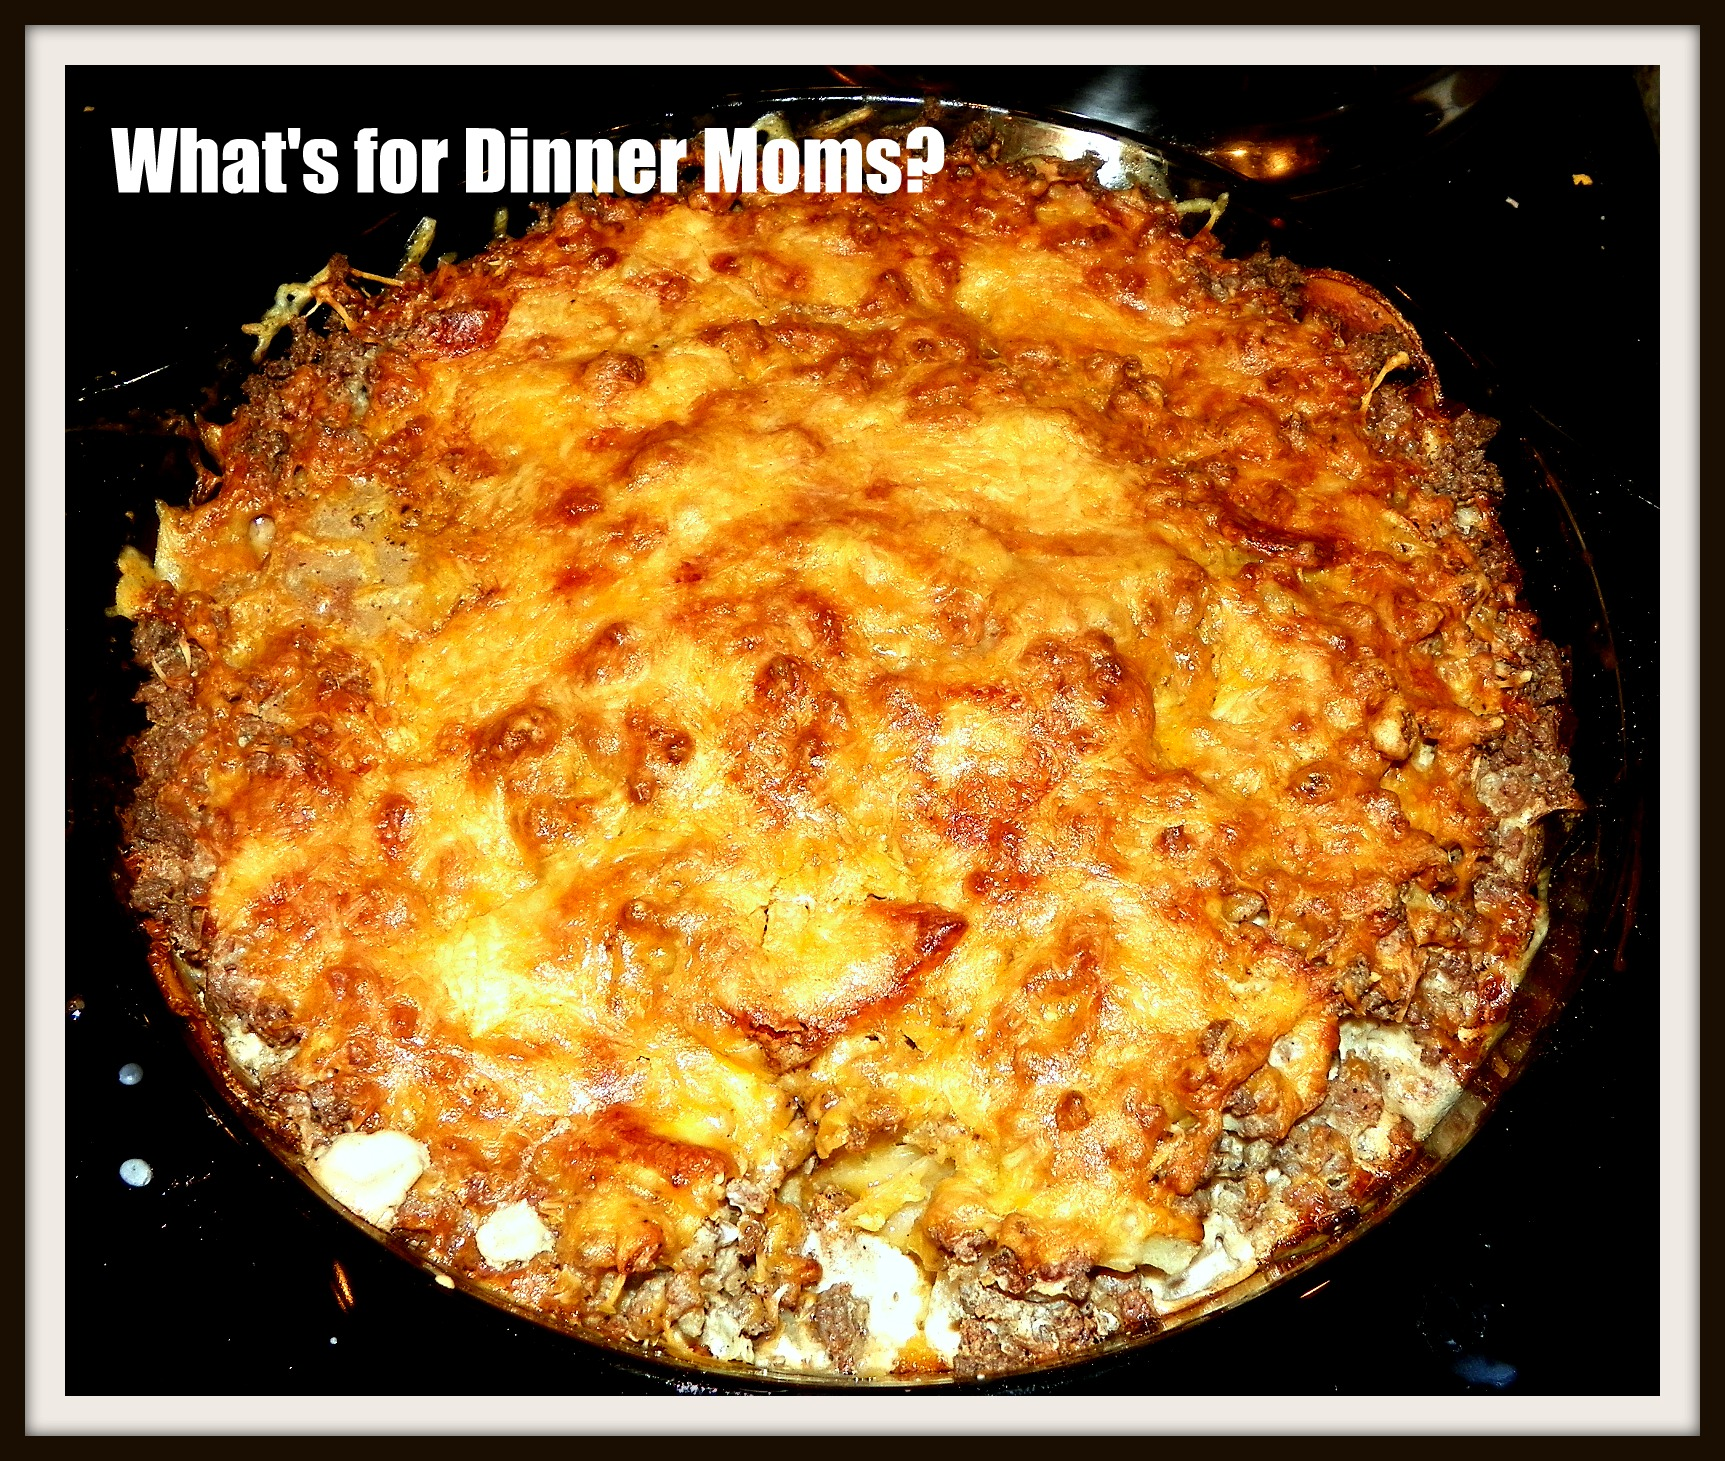 Scalloped potatoes with ground beef what 39 s for dinner moms for Things you can make with ground beef